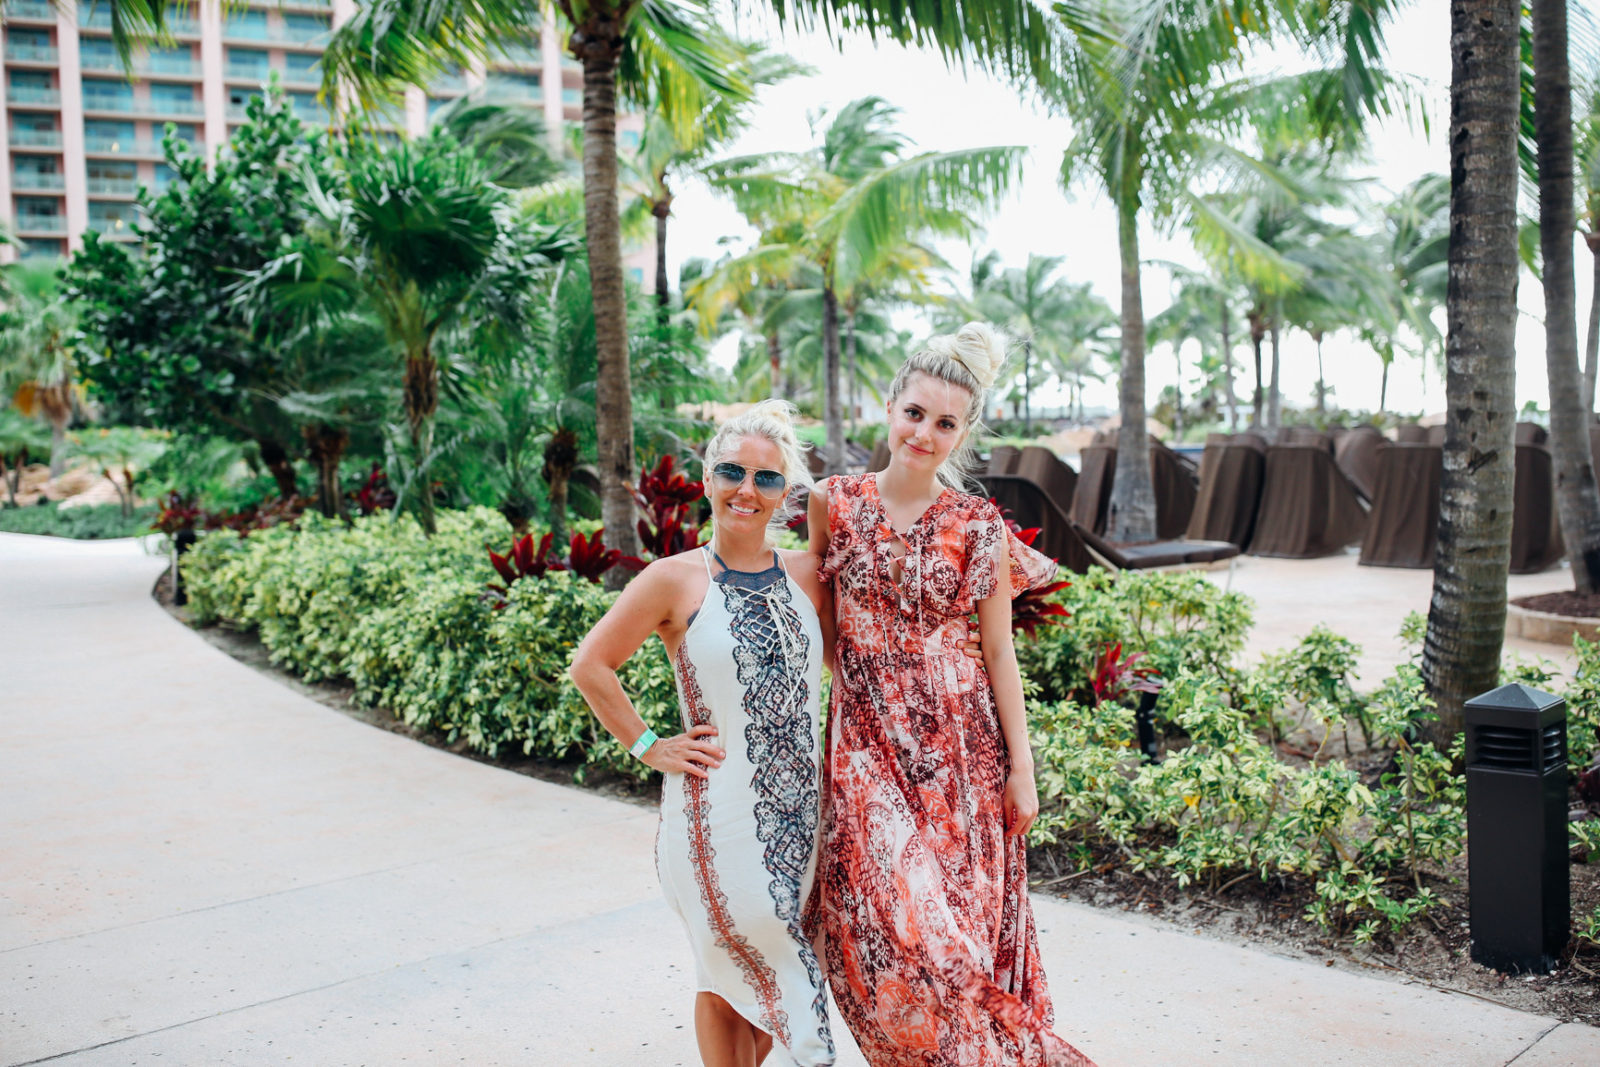 bahamas vacation summer trip aspyn ovard outfit ideas dresses lulus maxi dress printed_-15